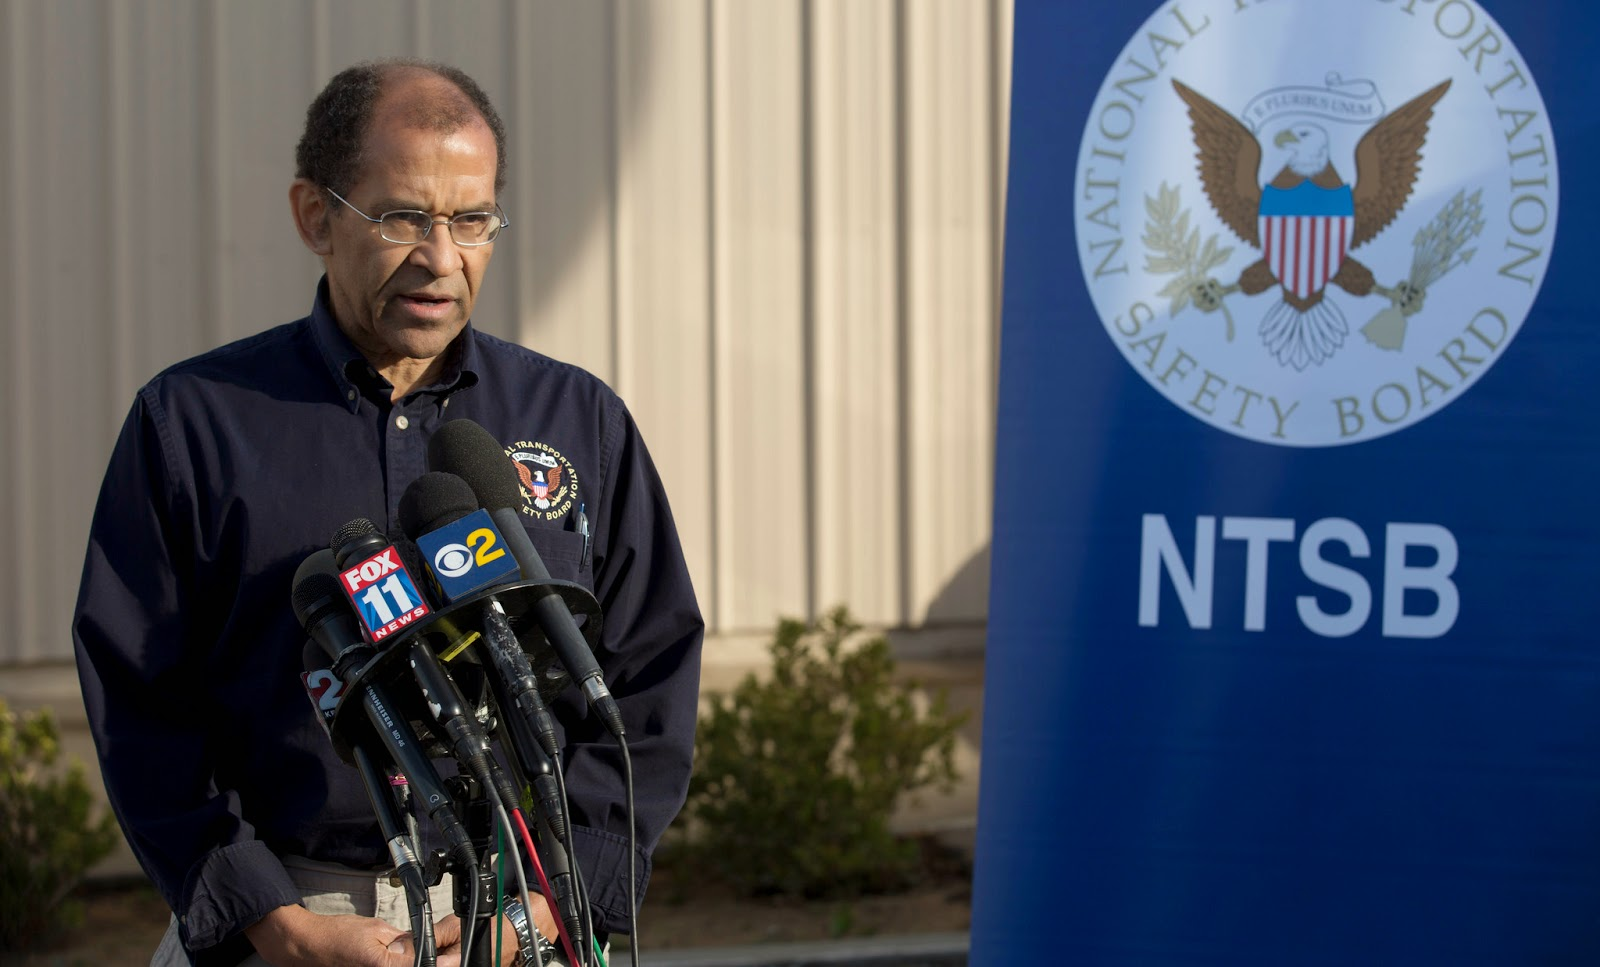 NTSB Acting Chairman Christopher A. Hart briefs the media in Mojave, Calif. on the crash of SpaceShipTwo. Credit: NTSB